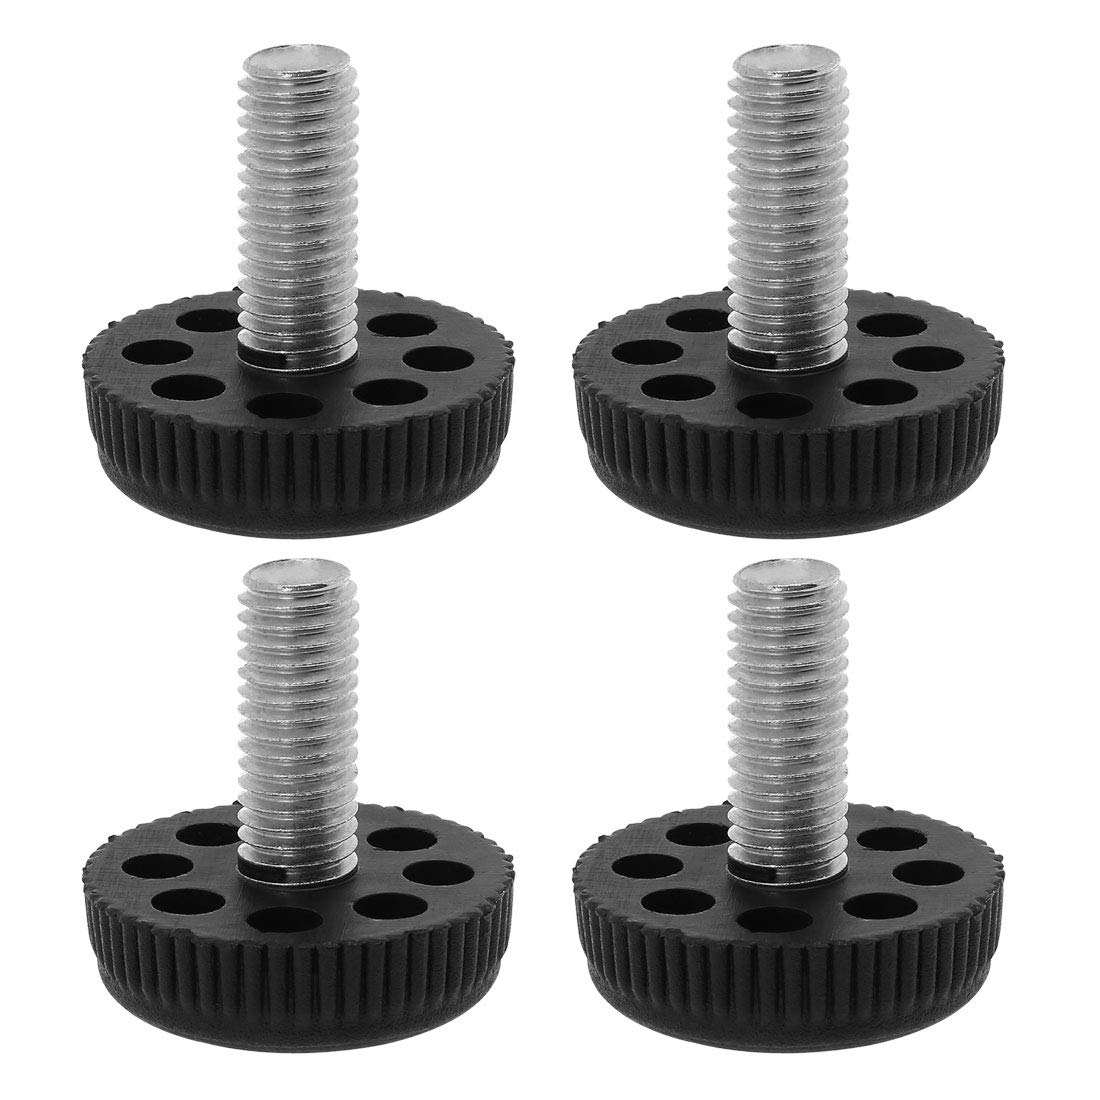 uxcell M10 x 25 x 35mm Screw on Leveling Feet Adjustable Leveler Floor Protector for Home Furniture Desk Table Sofa Leg 24 Pack